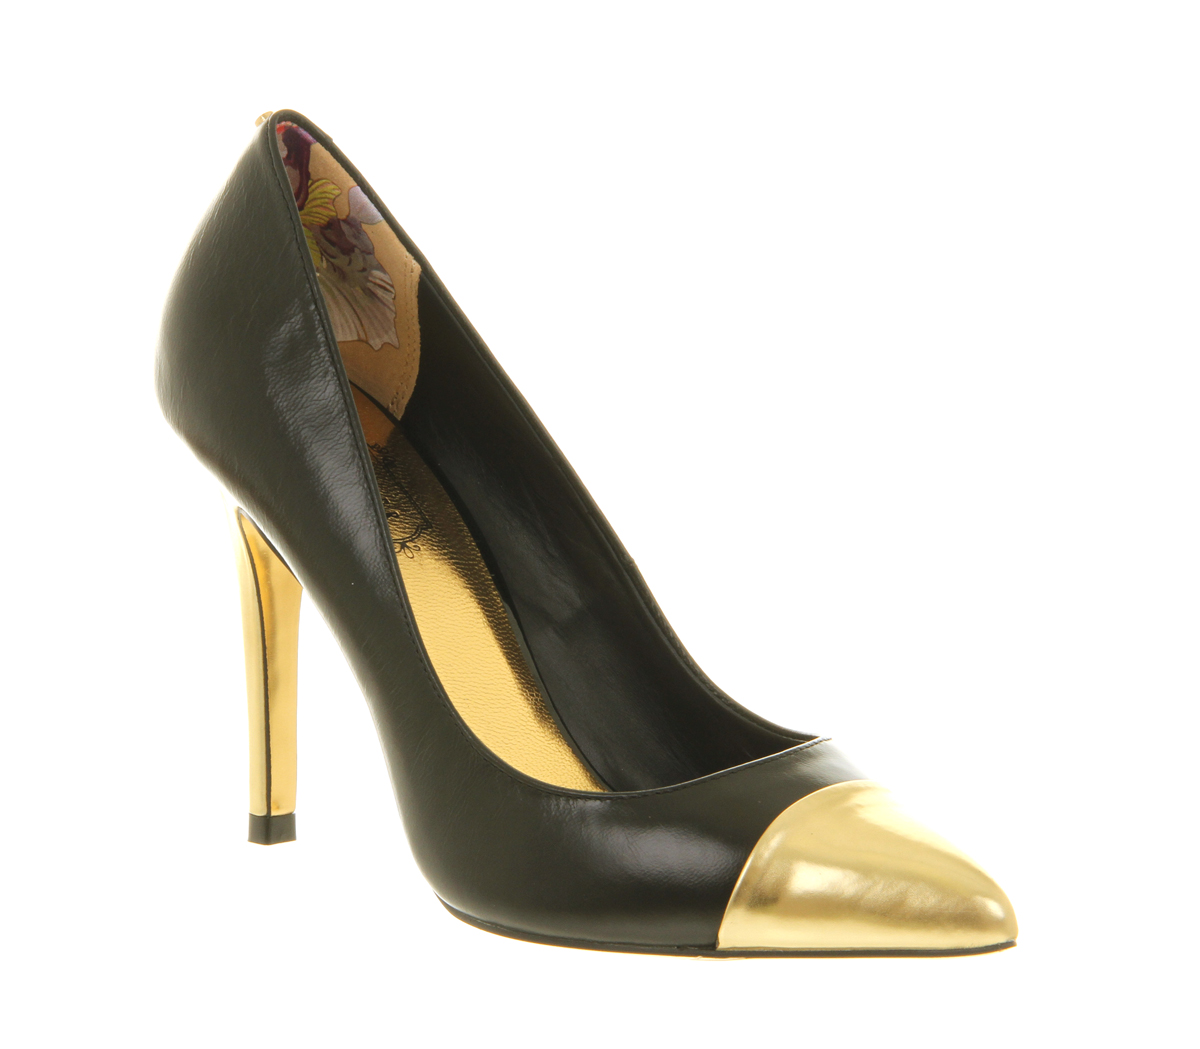 Ted baker Saysa High Heel Court Shoe Black Gold Metallic in Black ...